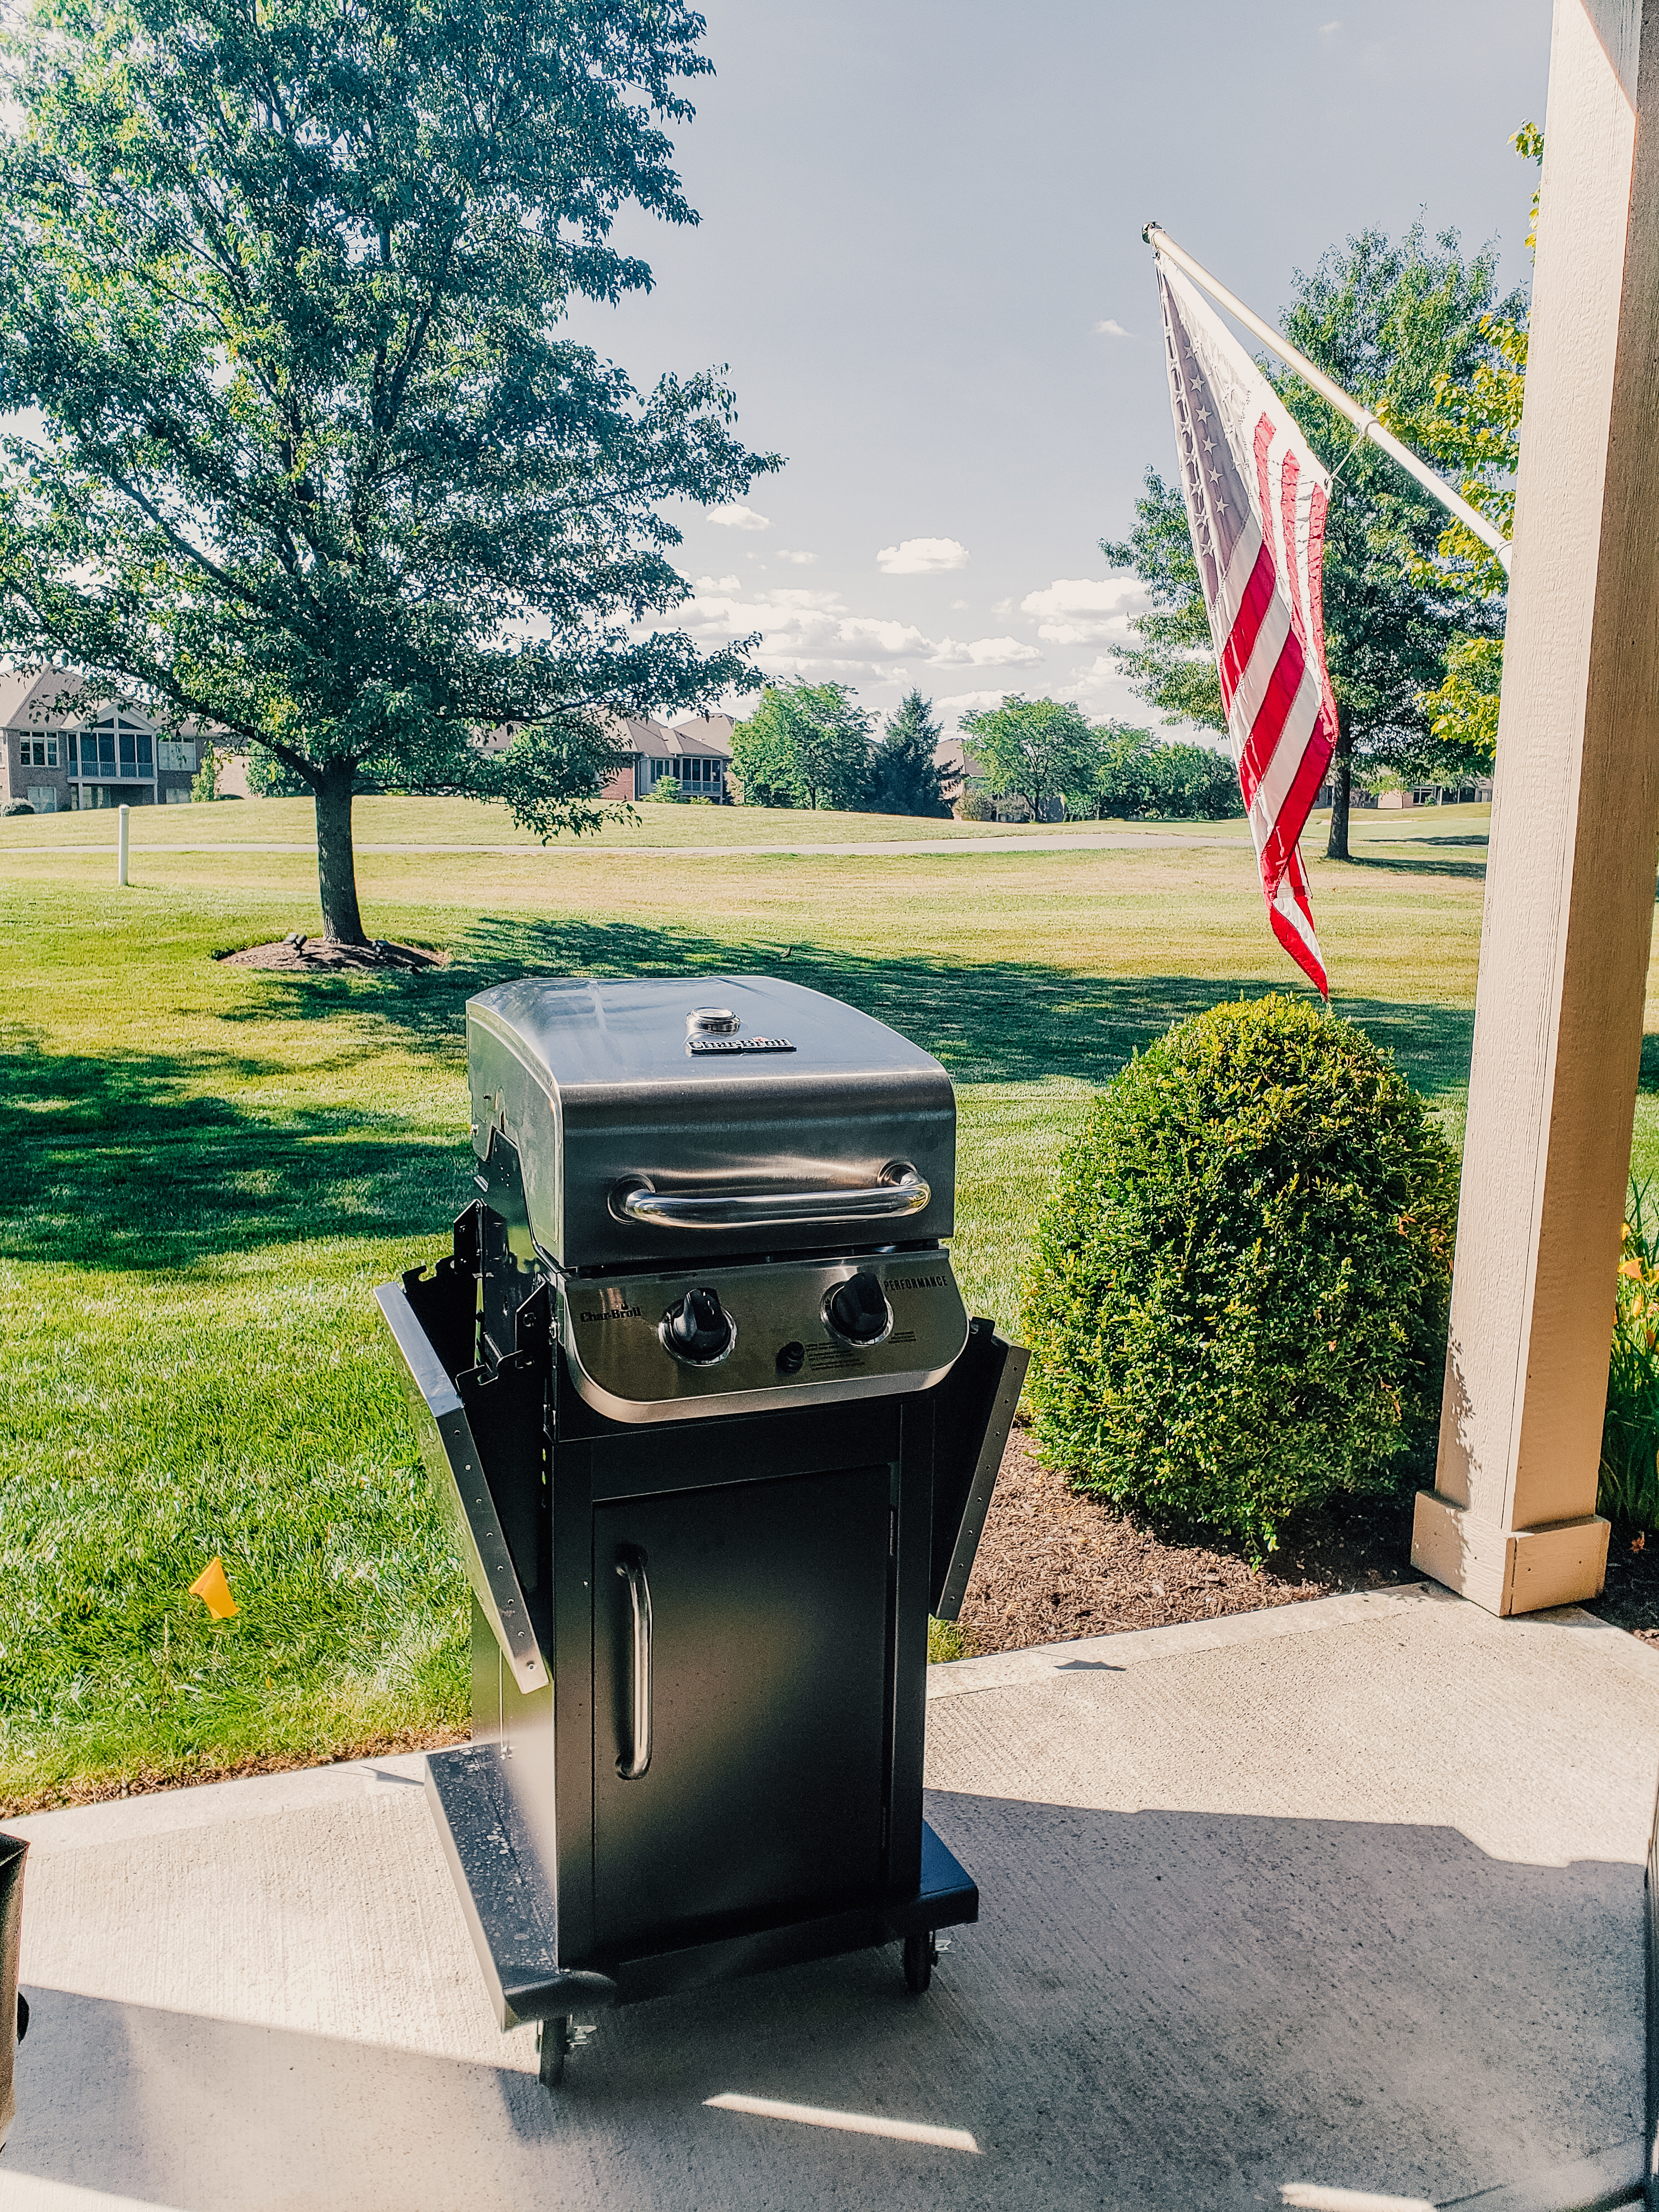 4th of July: grilling and our flag